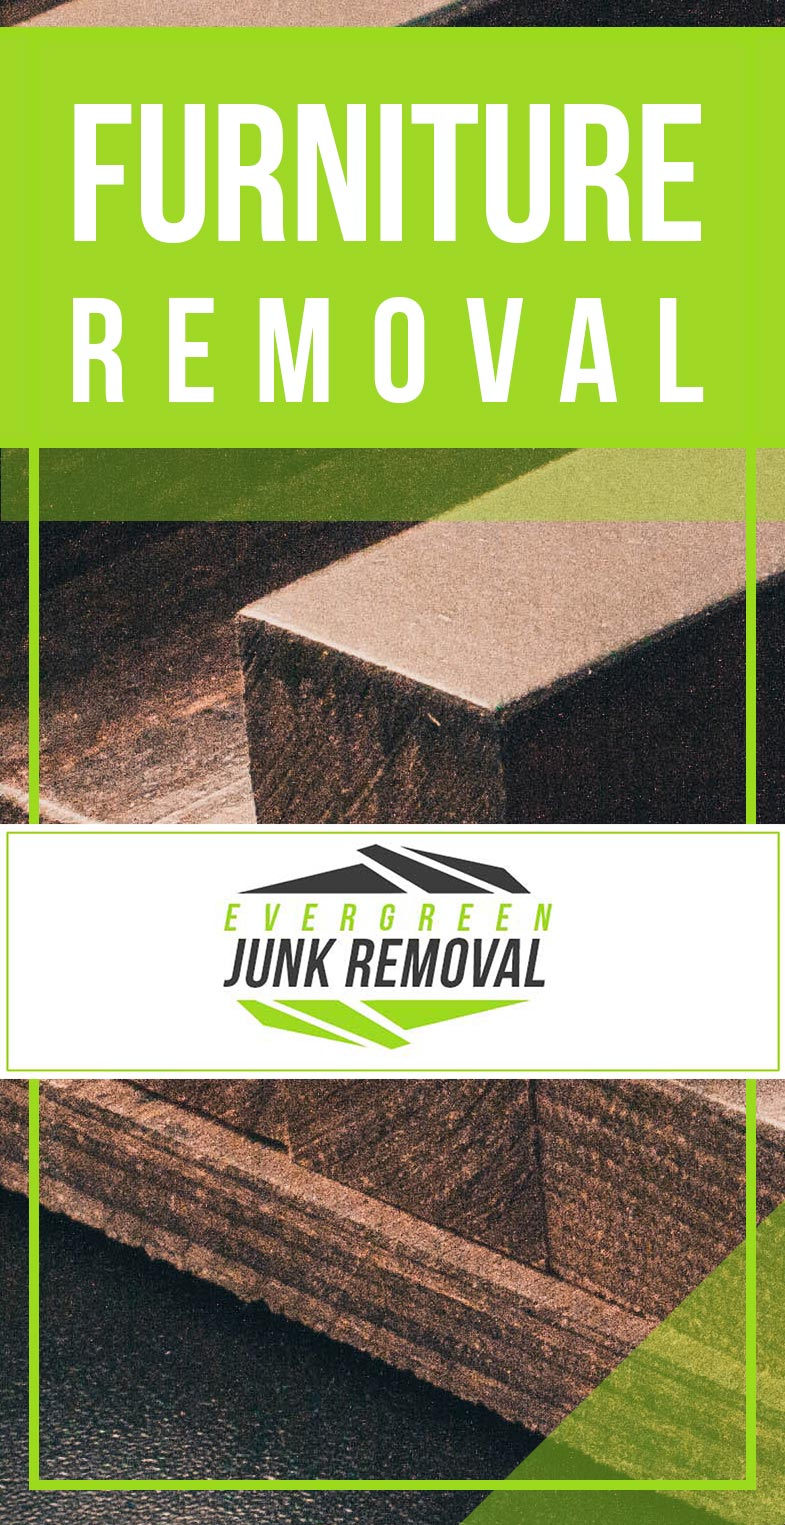 Junk Removal Hialeah Furniture Removal